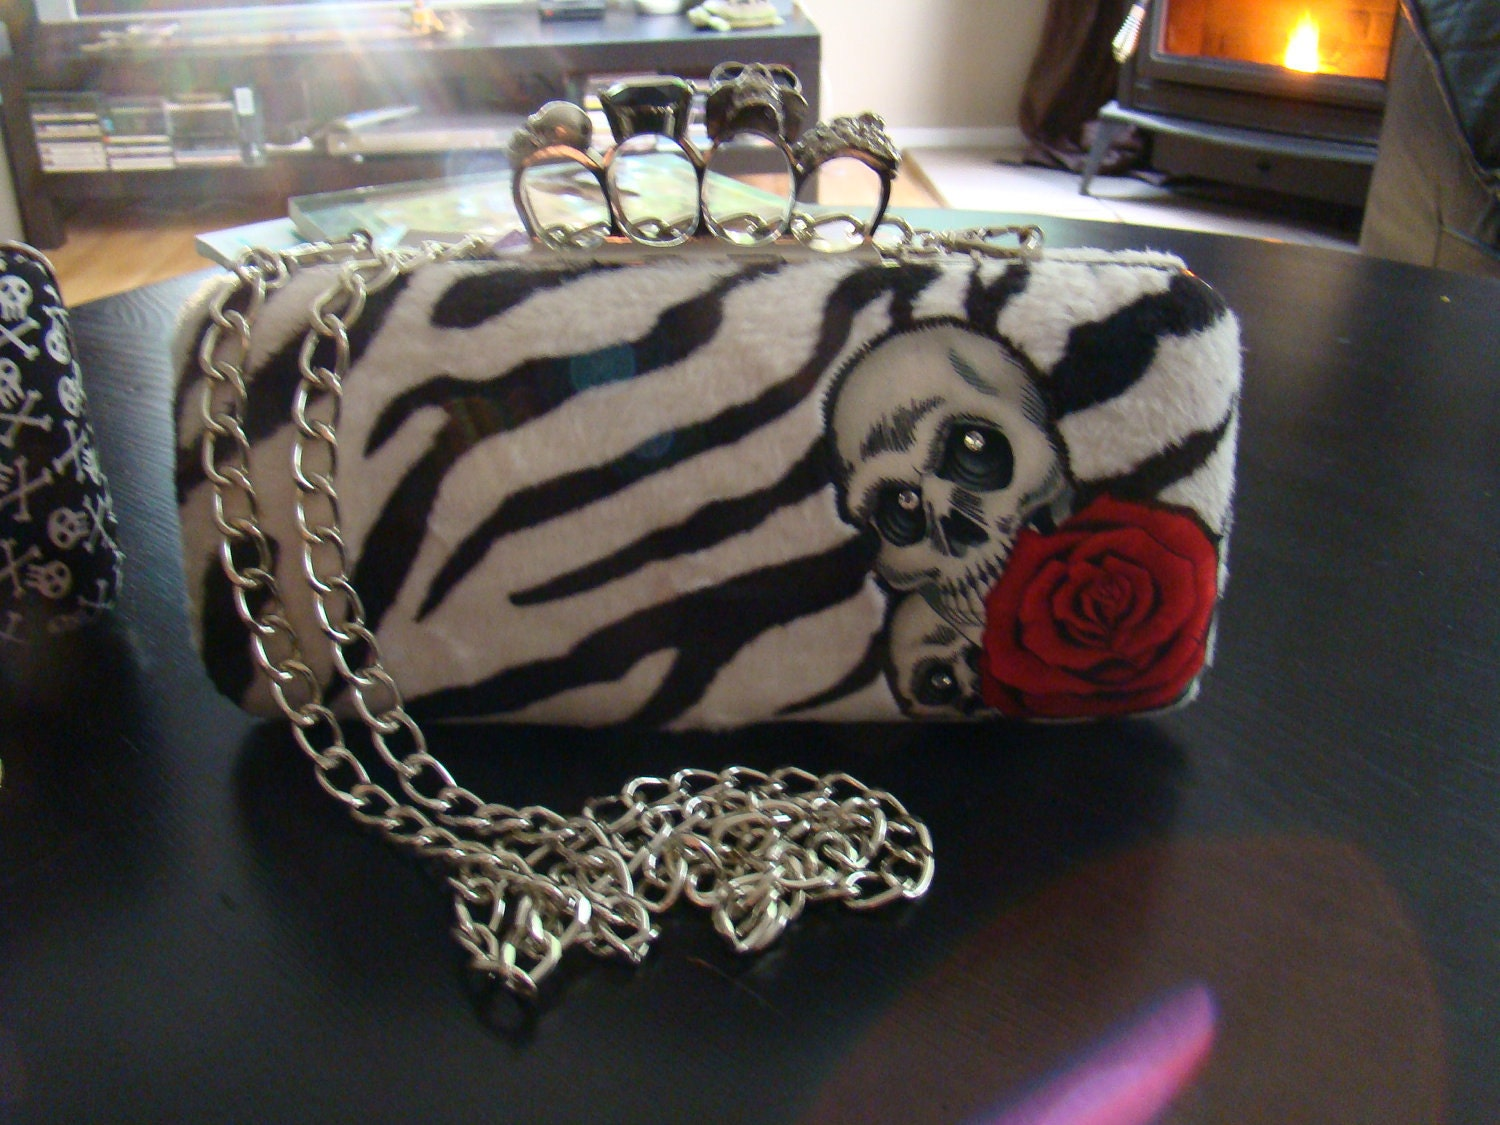 Skull knuckle clutch - Faux Zebra fur with skull and red rose applique